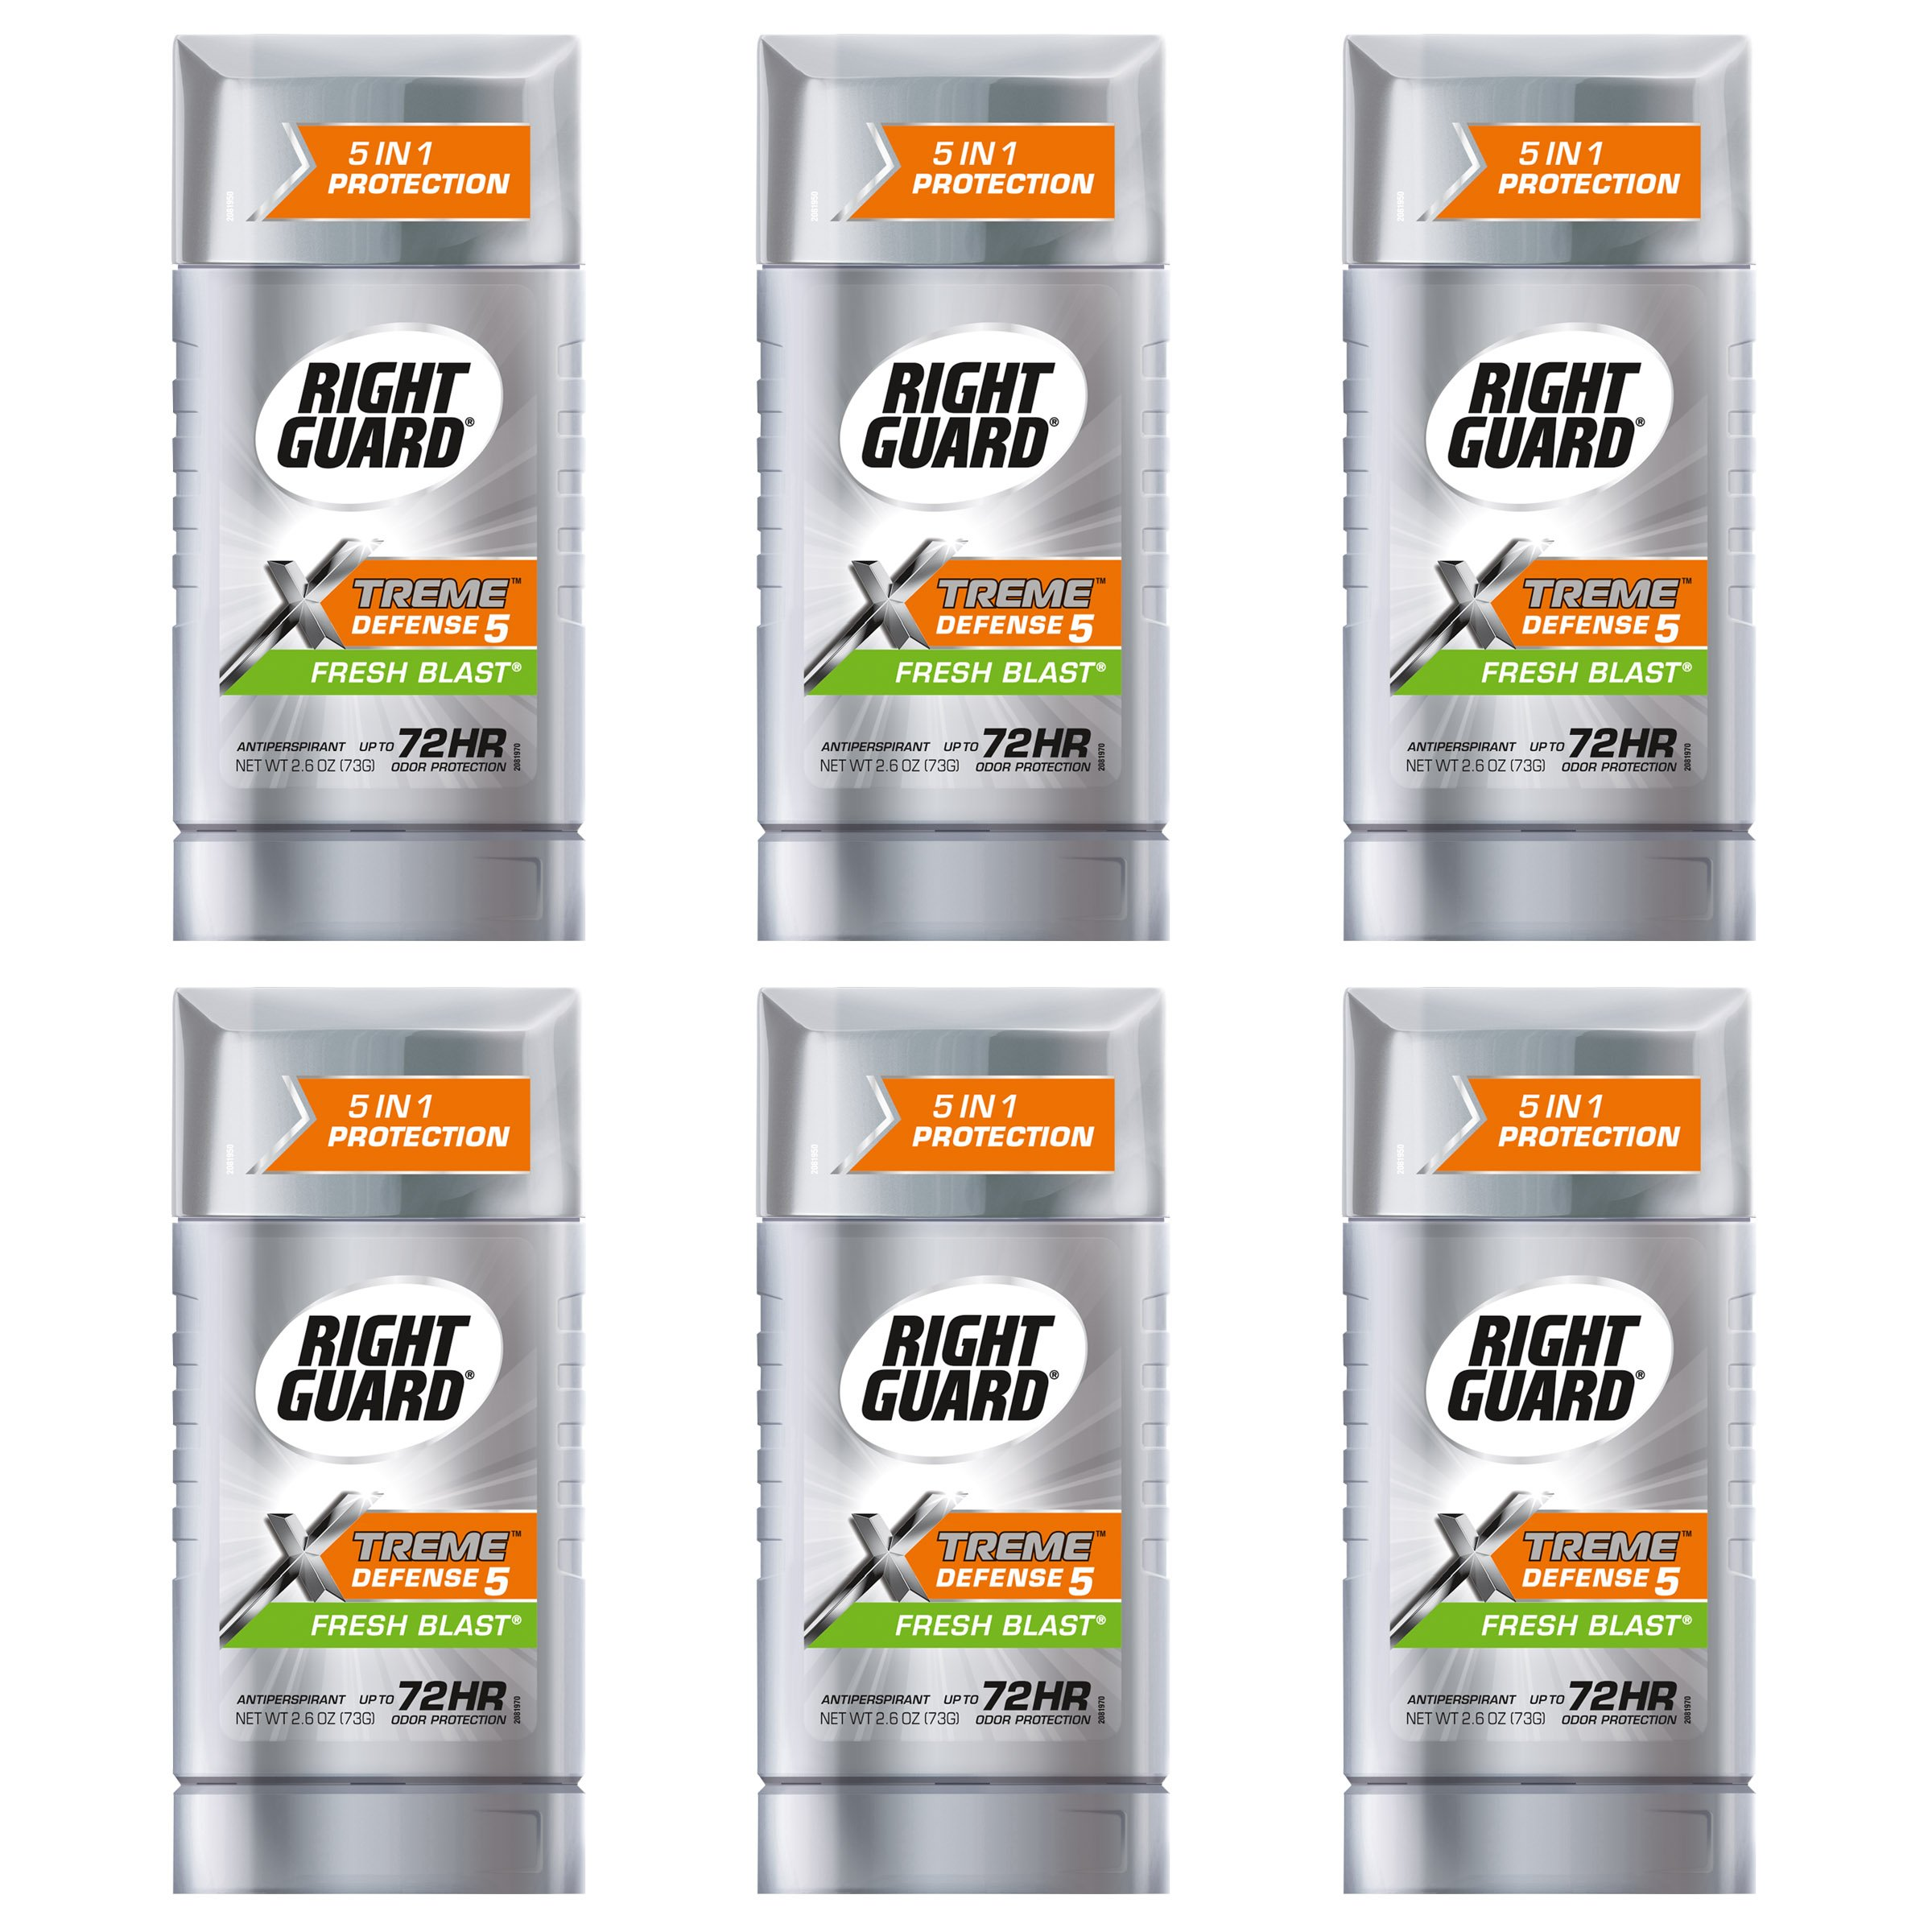 Right Guard Xtreme Defense 5 Anti-Perspirant & Deodorant, Fresh Blast 2.60 oz (Pack of 6)